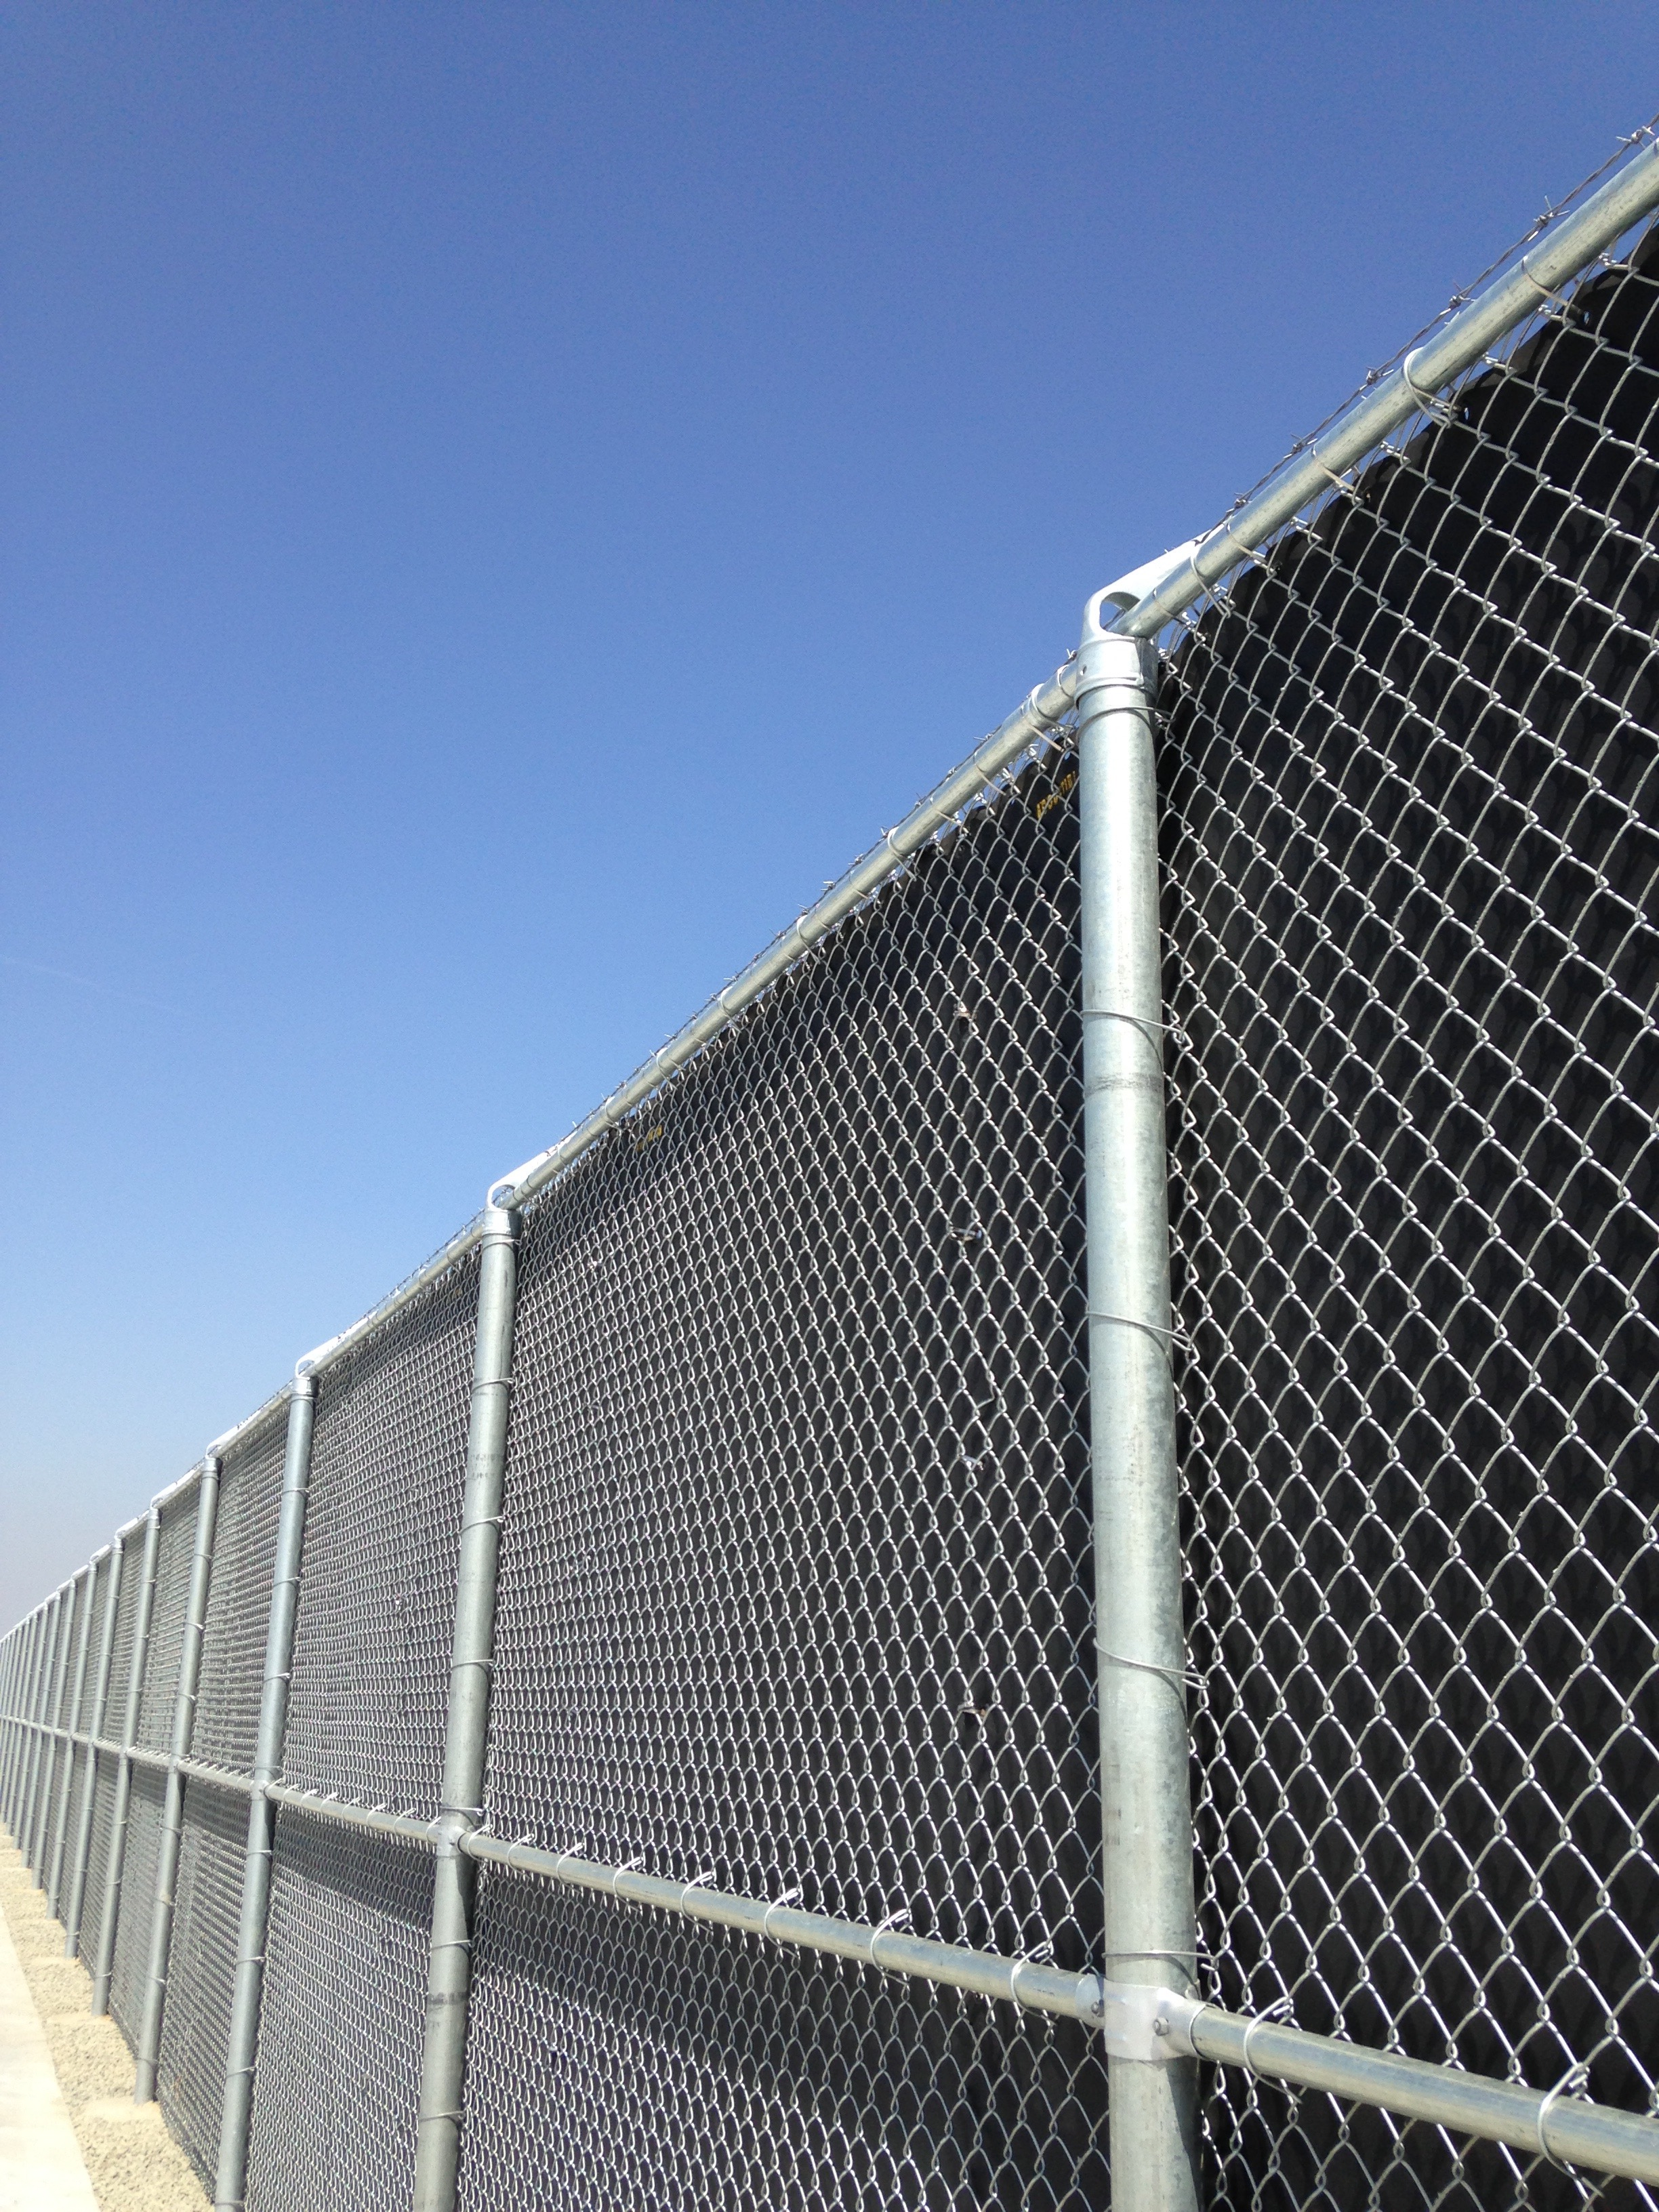 Acoustiblok 174 Lands Solution To Noise At San Bernardino Airport